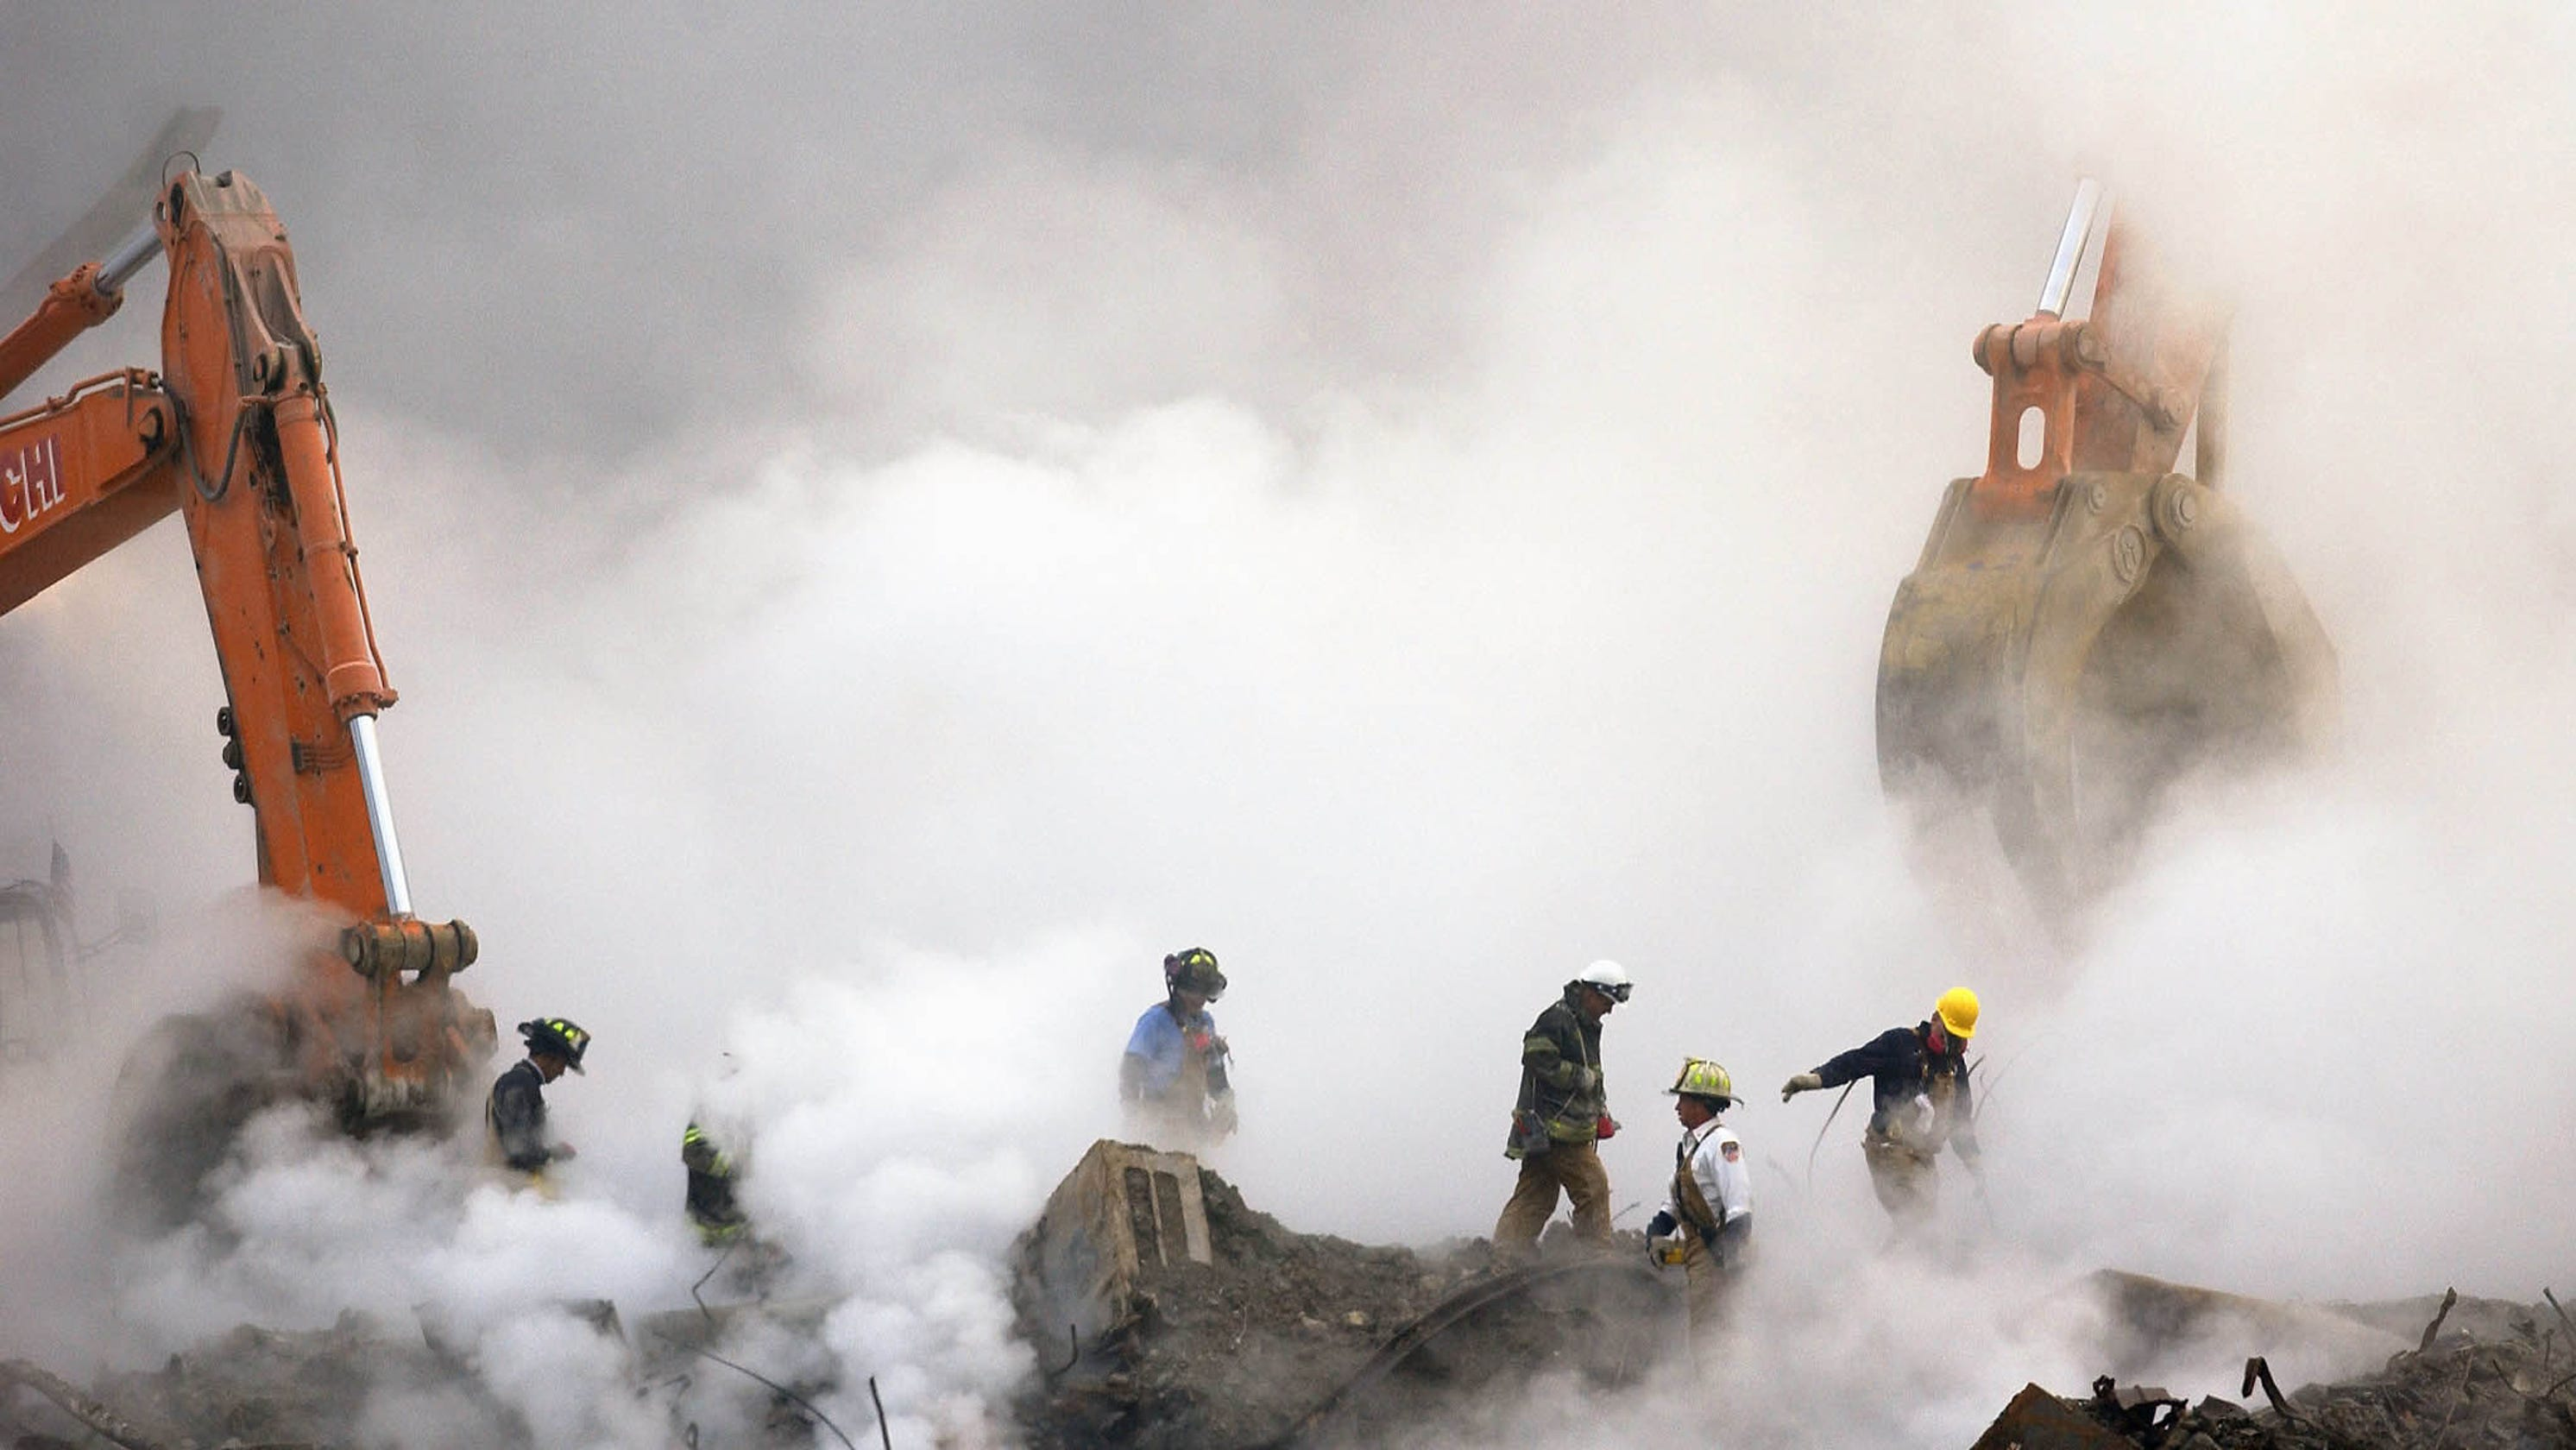 Compensation fund for 9/11 responders expected to pass in Senate Tuesday